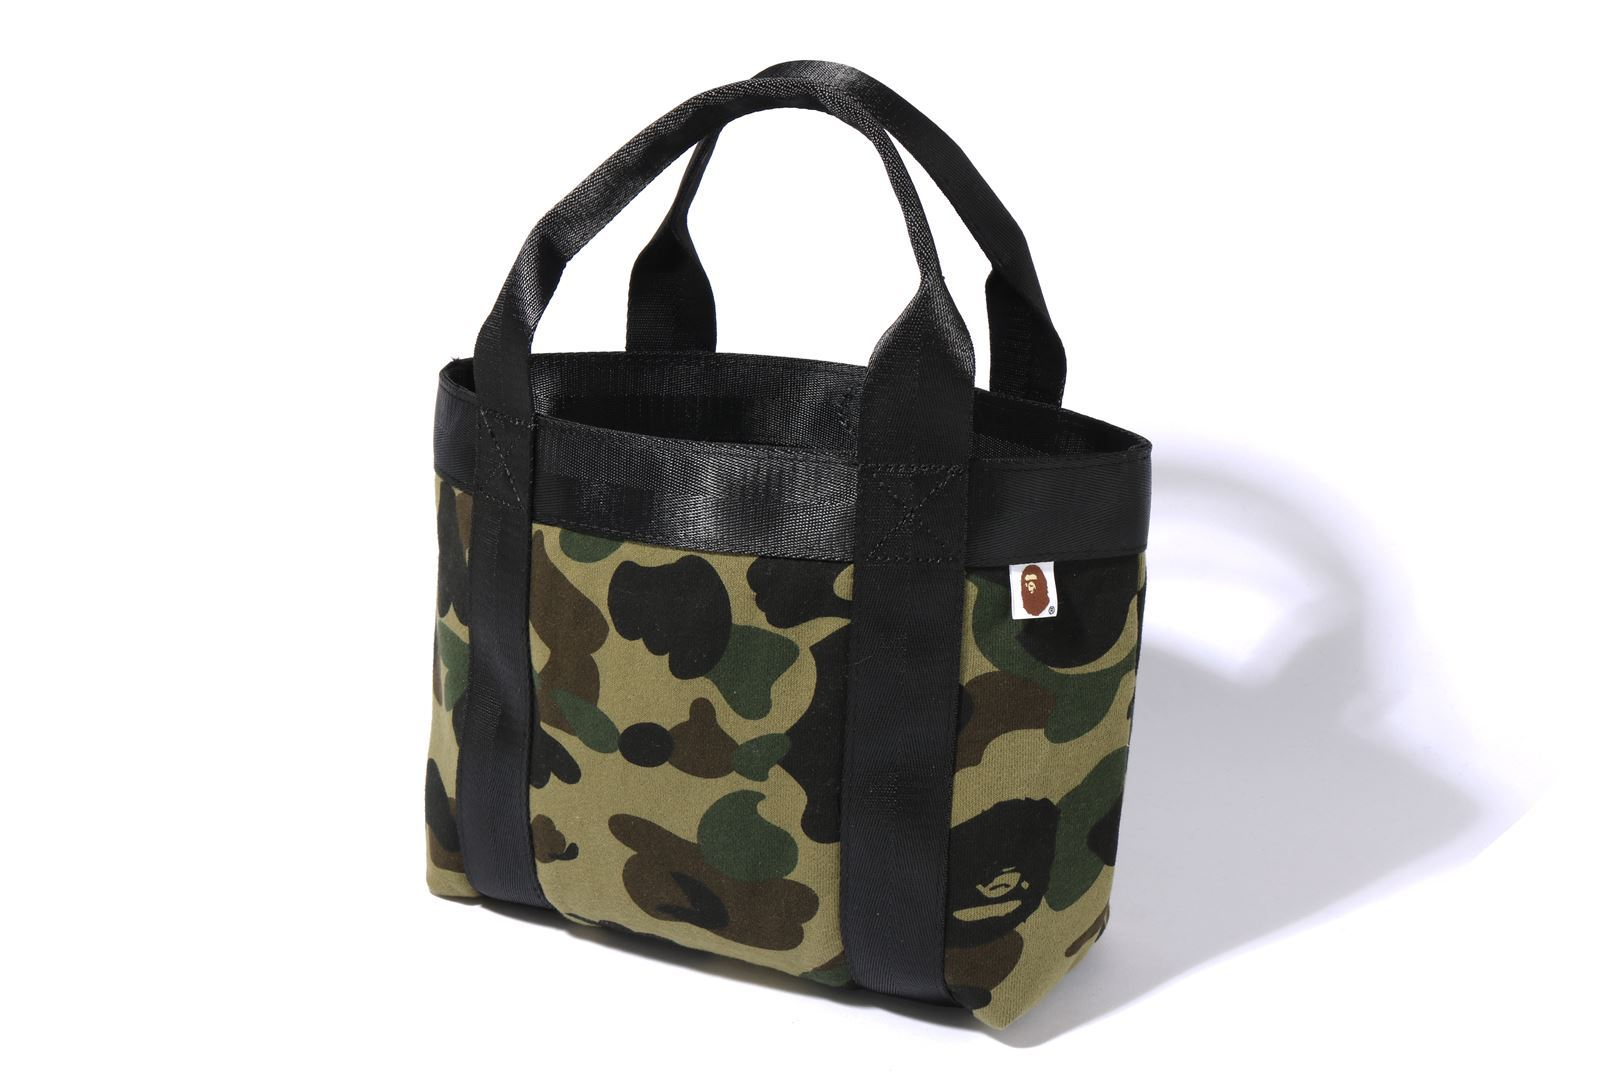 1ST CAMO SWEAT TOTE BAG_a0174495_11494924.jpg